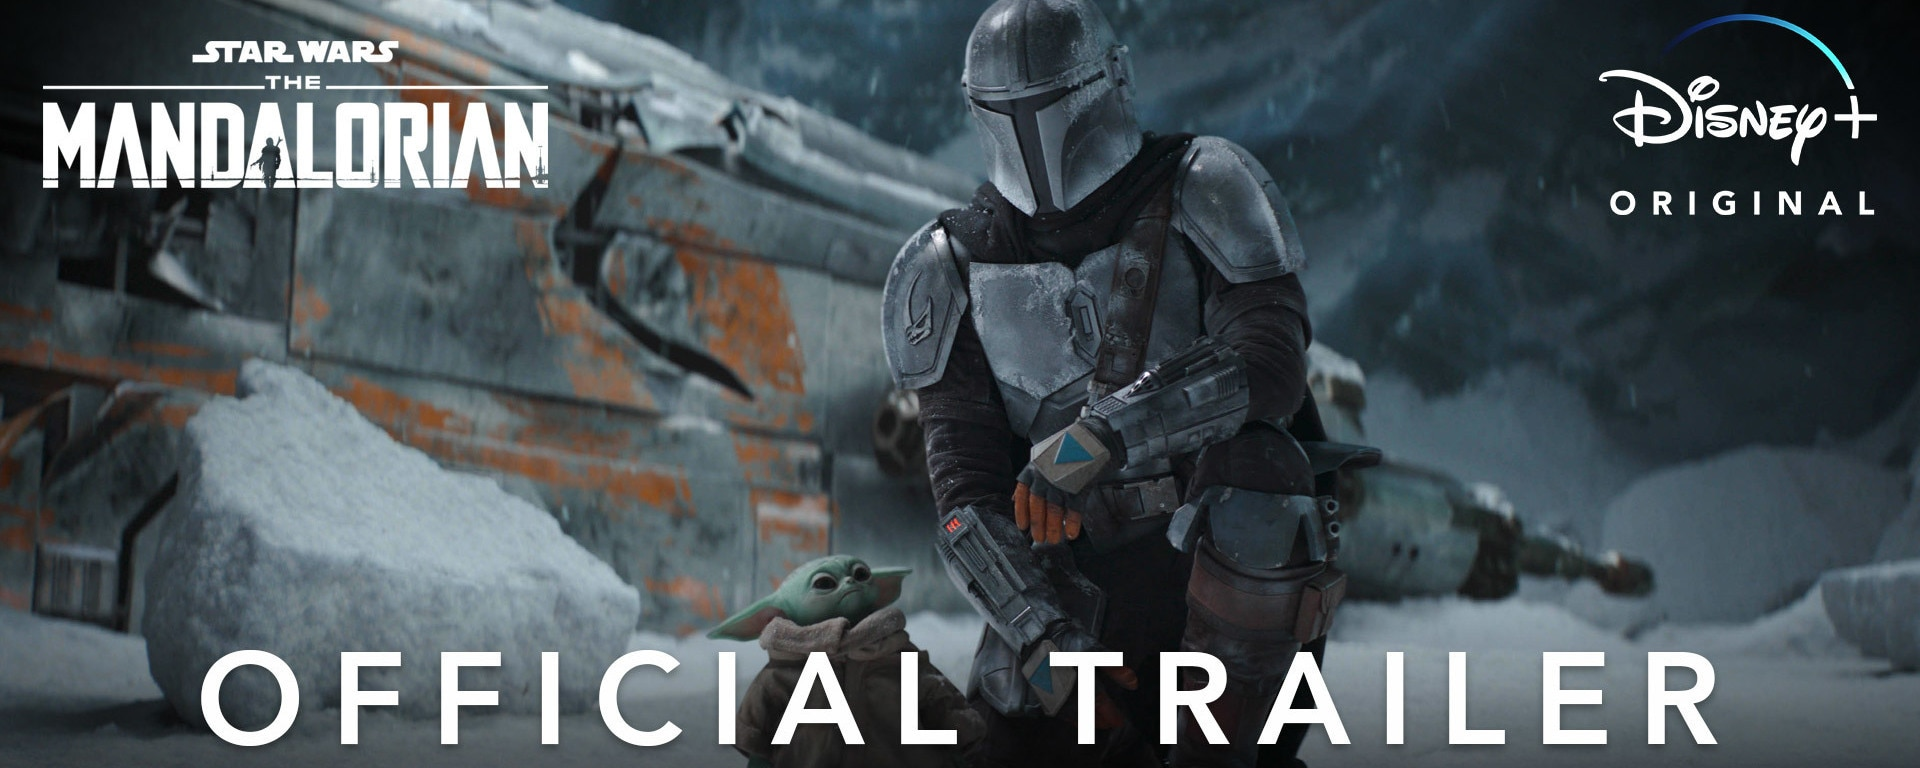 Season 2 Official Trailer - The Mandalorian